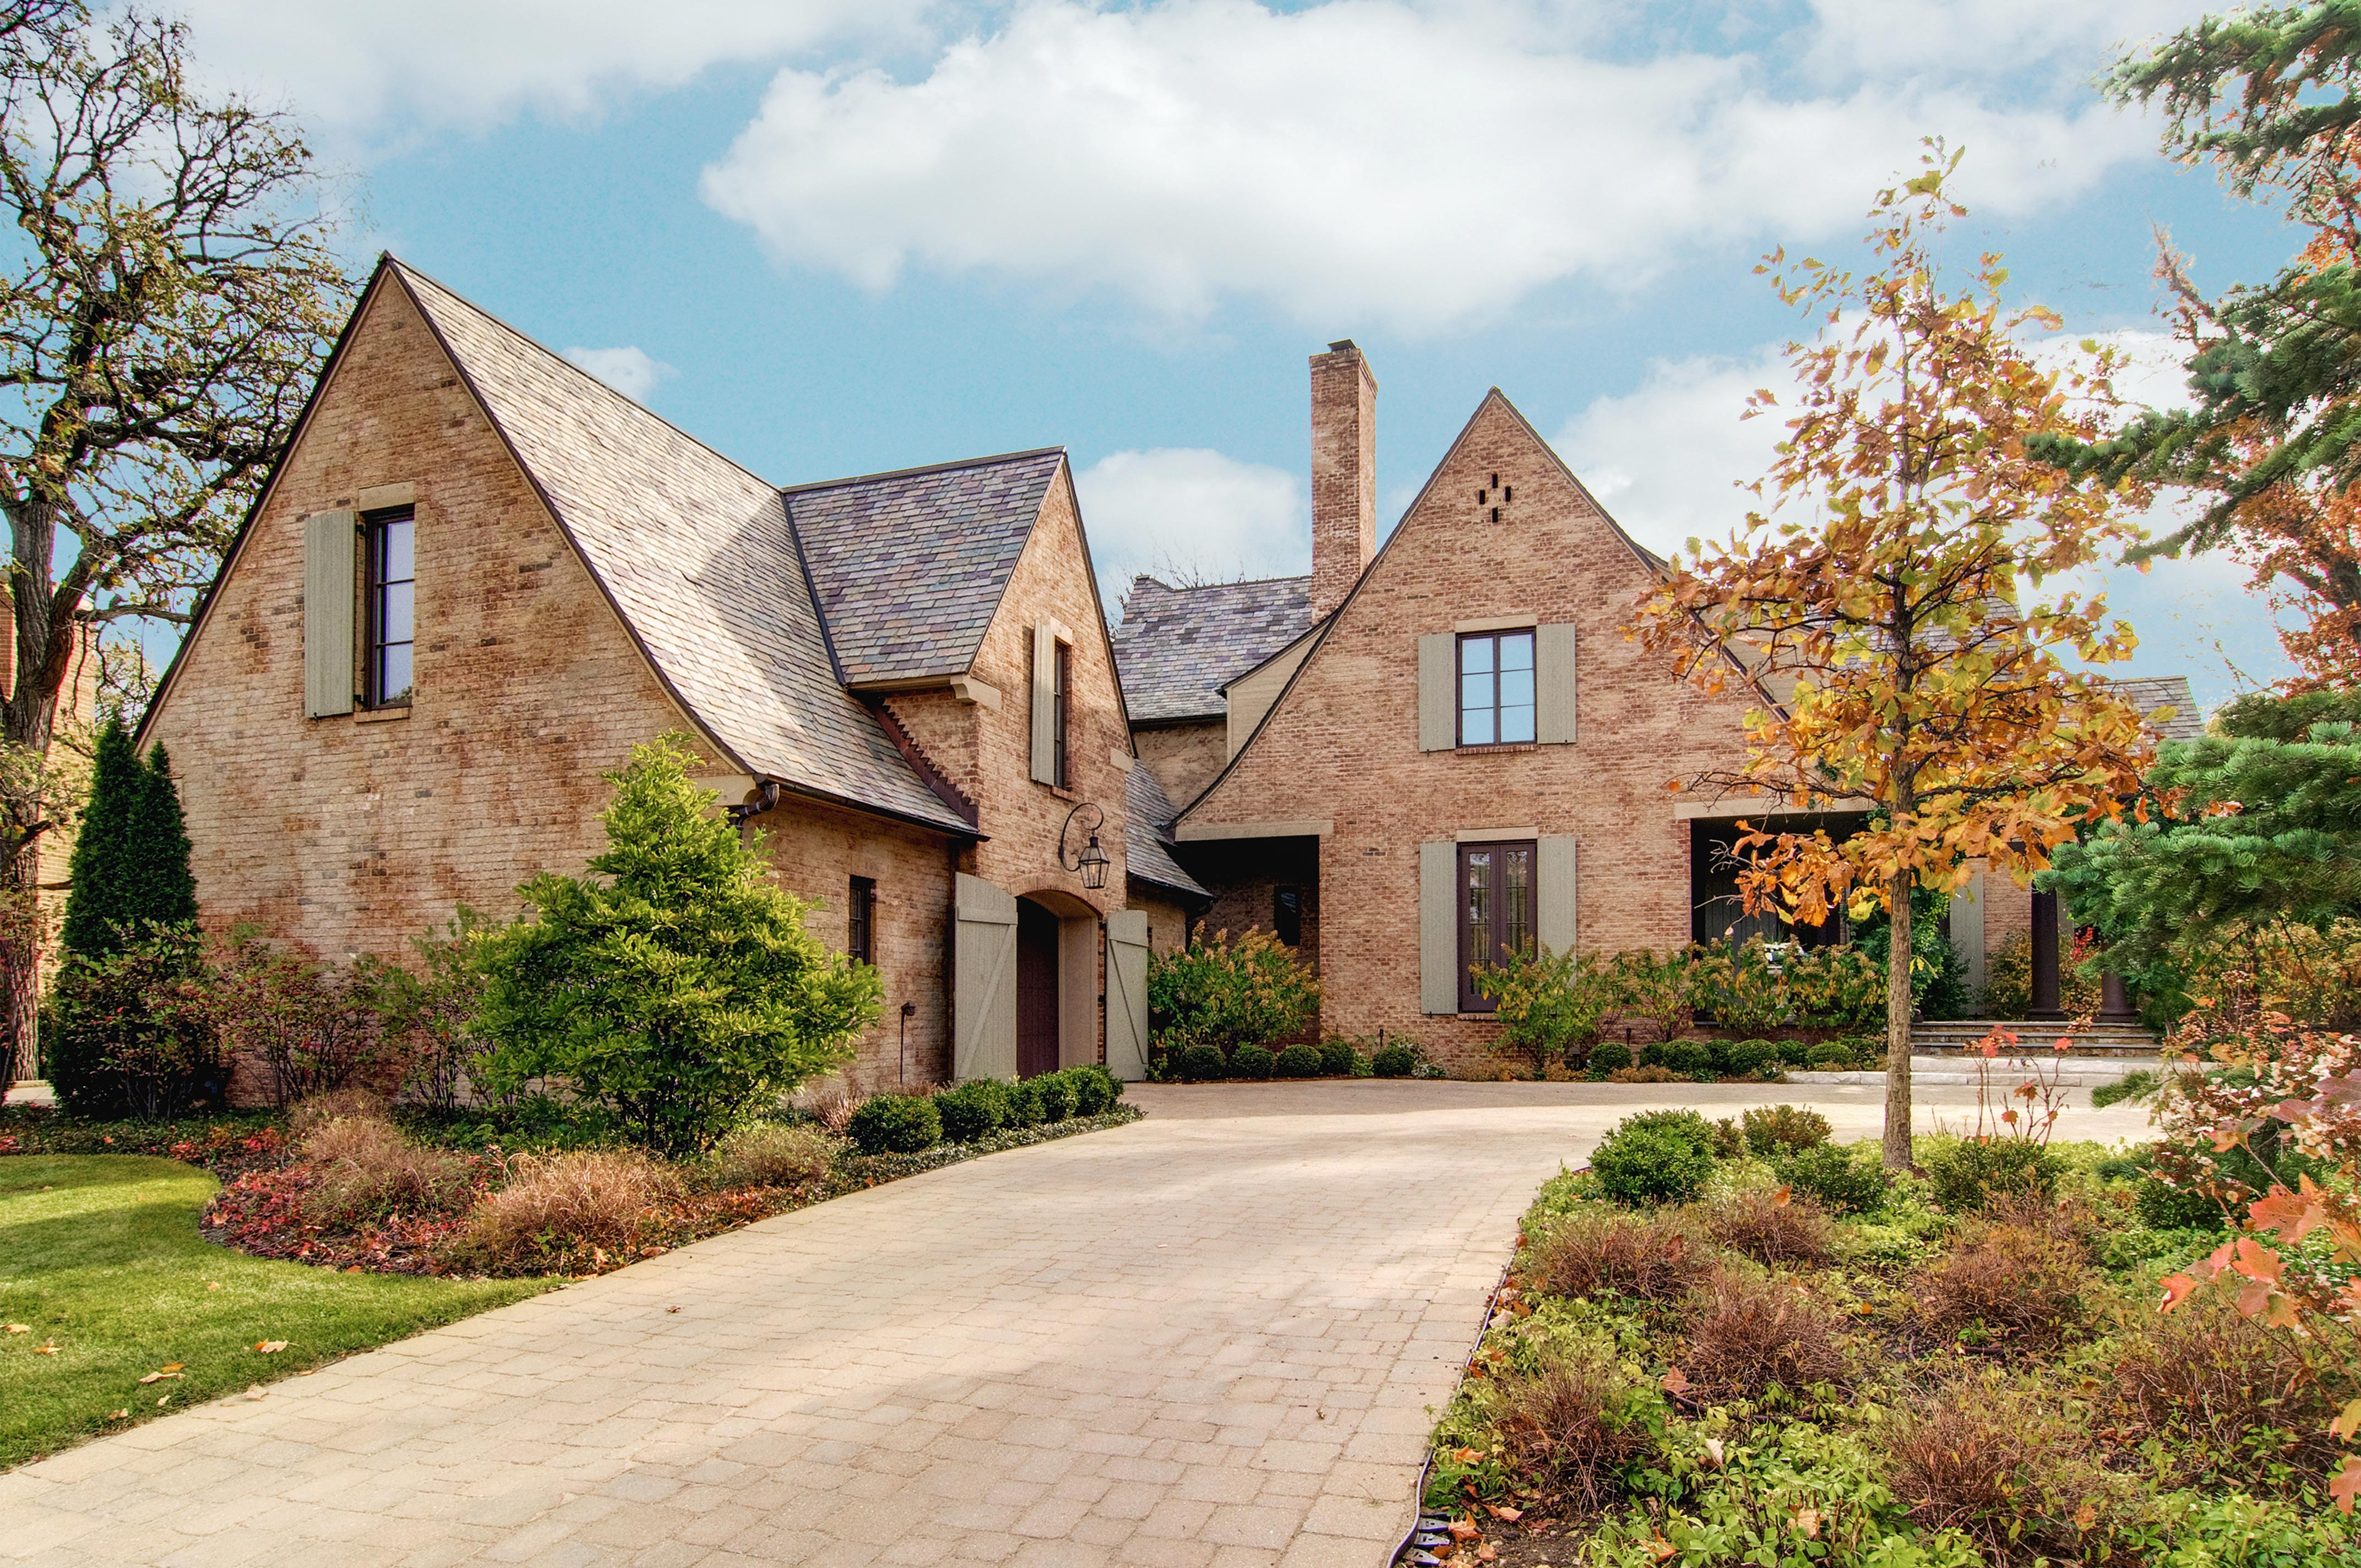 Residential real estate photography prices. Prices, scheduling and policies.